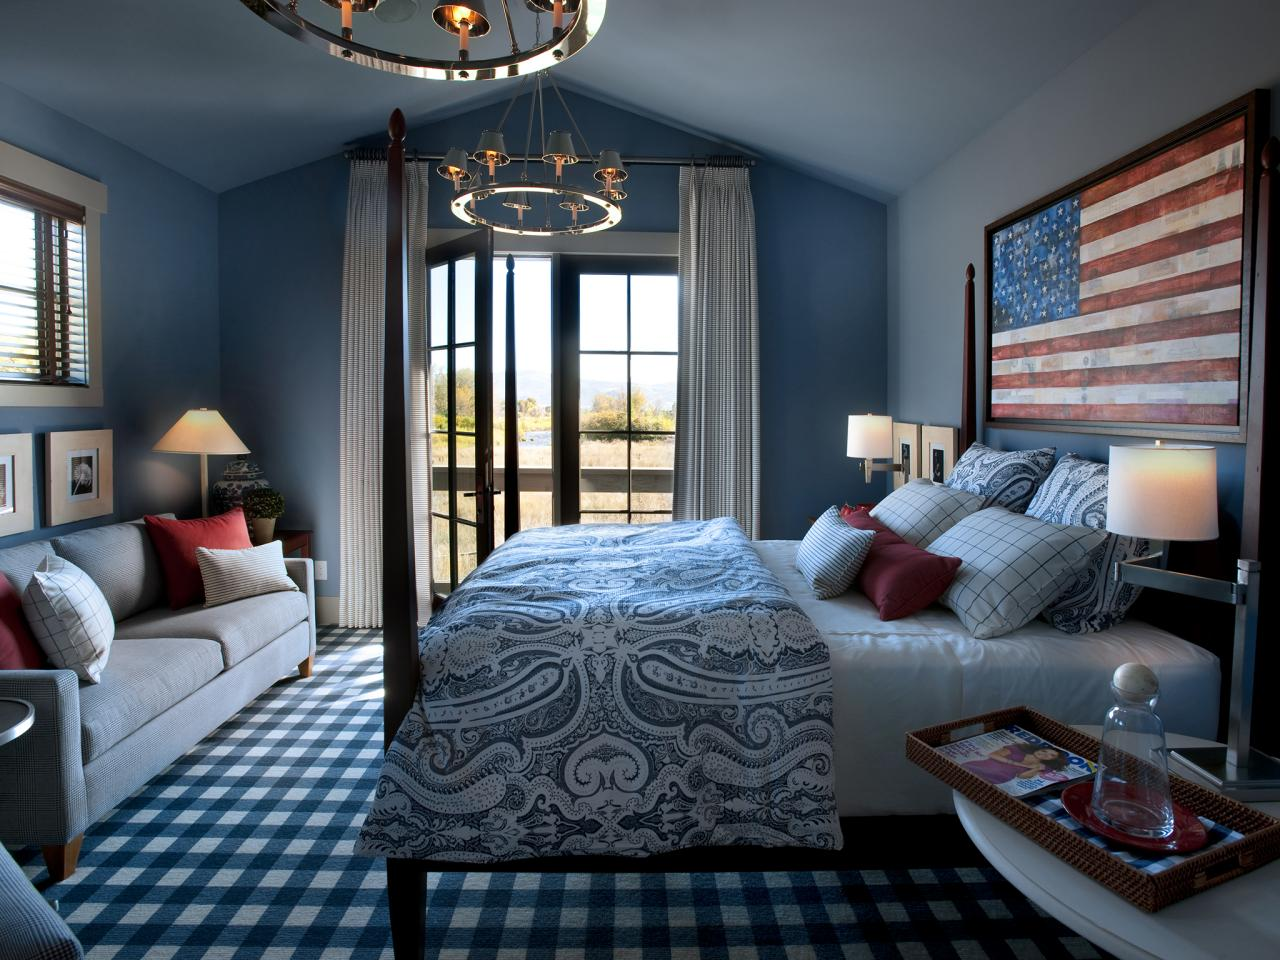 American Flag Wall Decors Homeowners